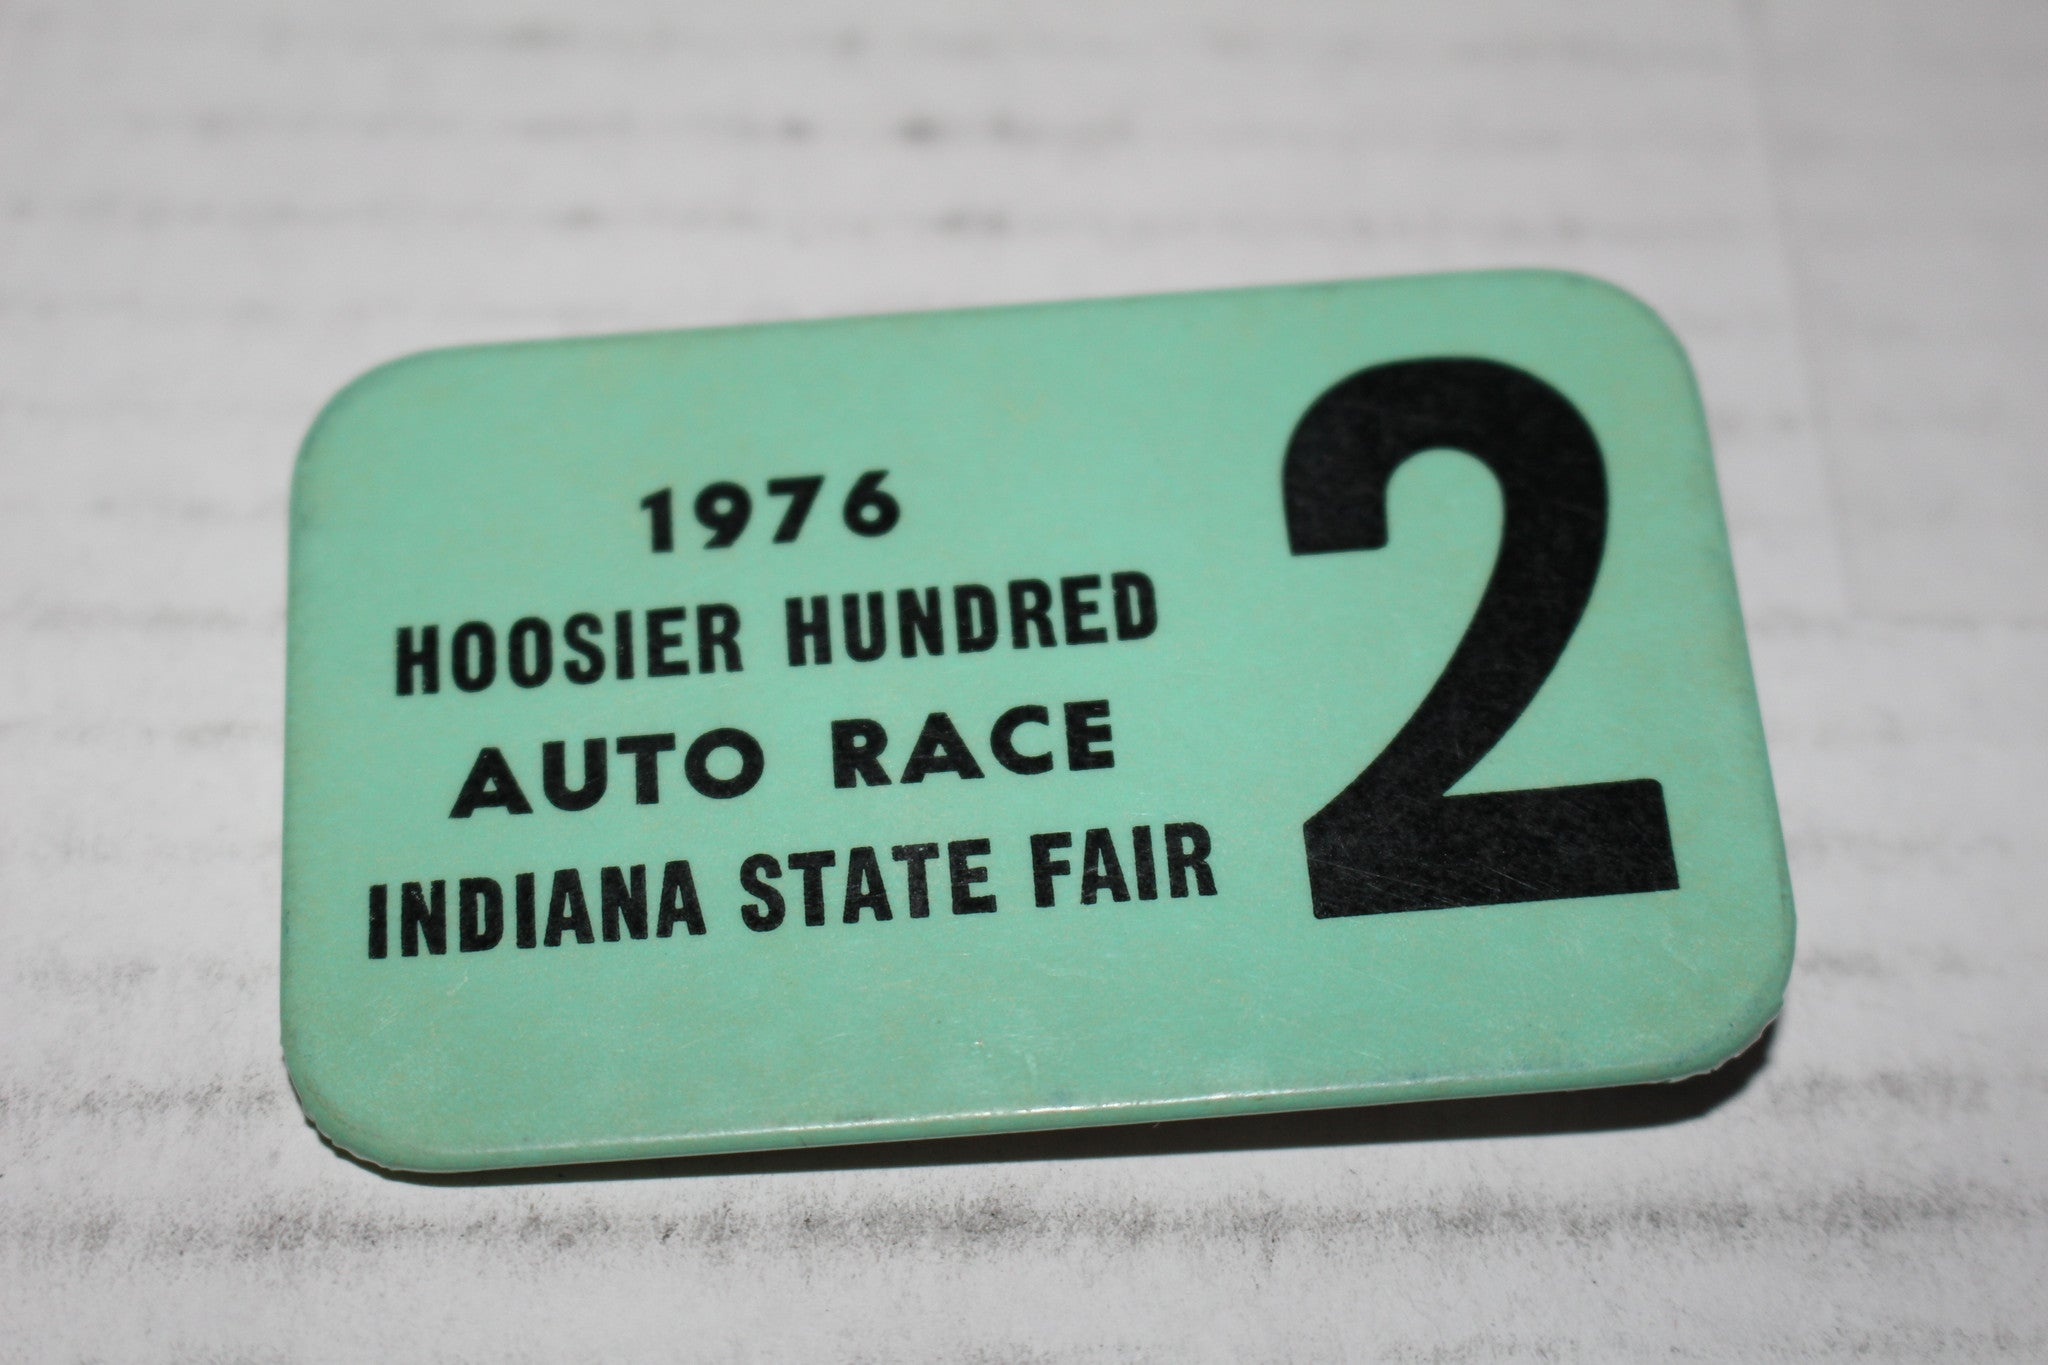 Vintage 1976 Hoosier Hundred Auto Race Pinback Button - Vintage Indy Sports